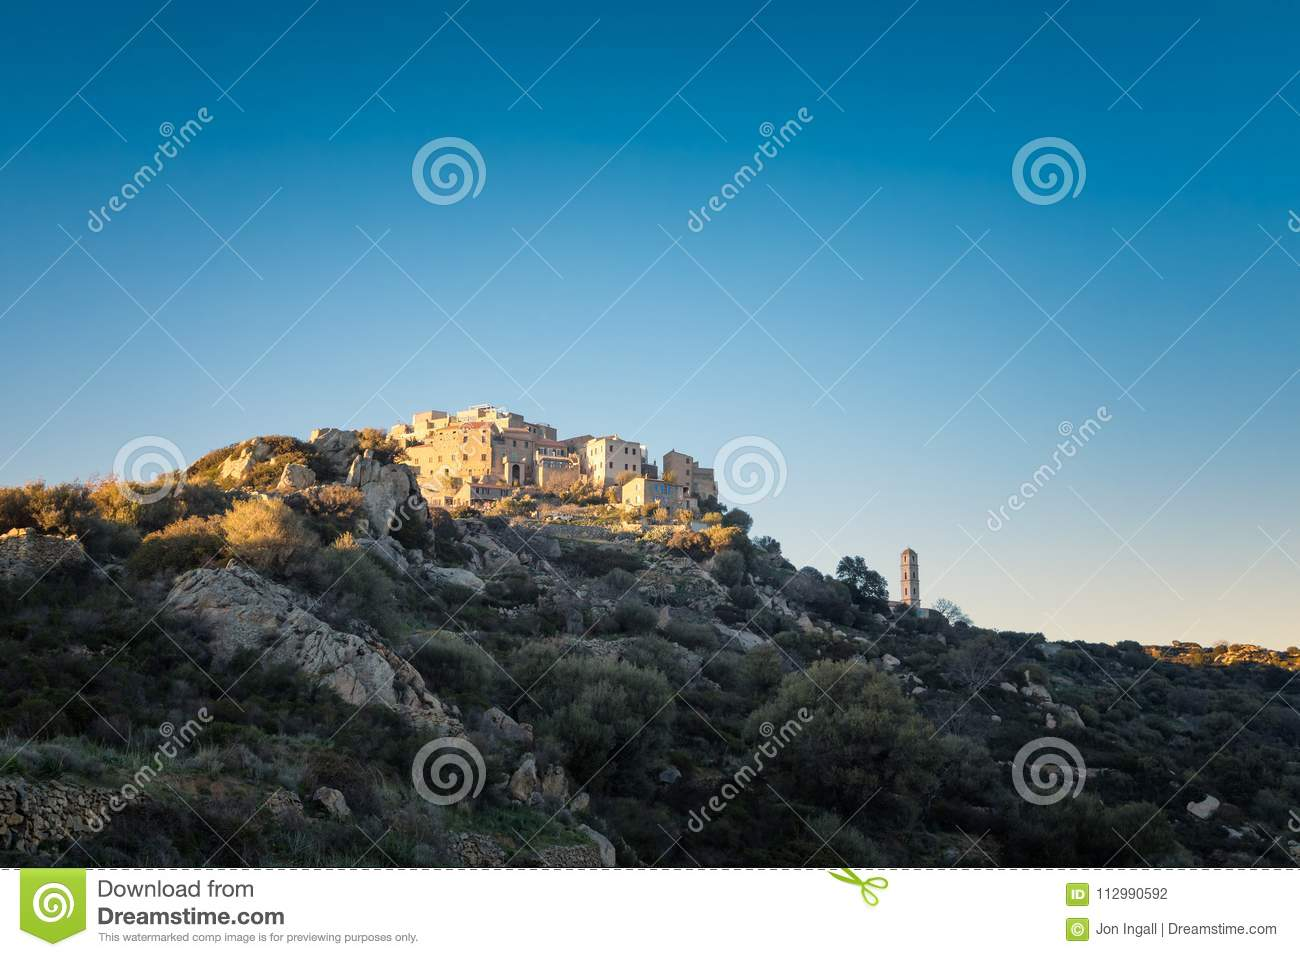 Sant` Antonino church and village in Balagne region of Corsica